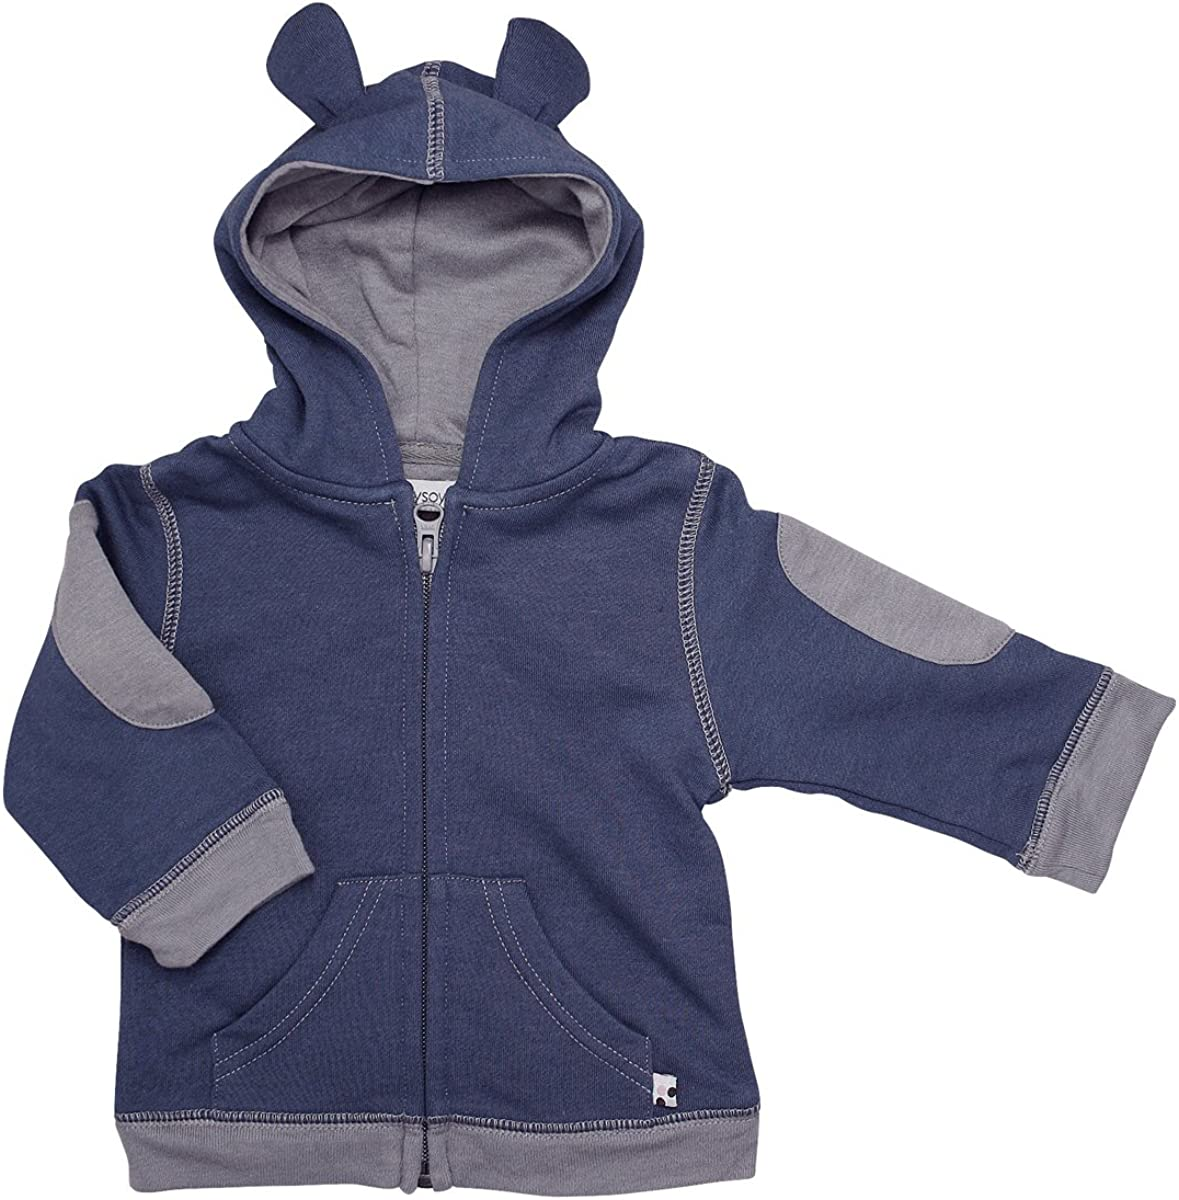 Babysoy Fleece Bunny Ear Zipper Hoodie Jacket Indigo 3T